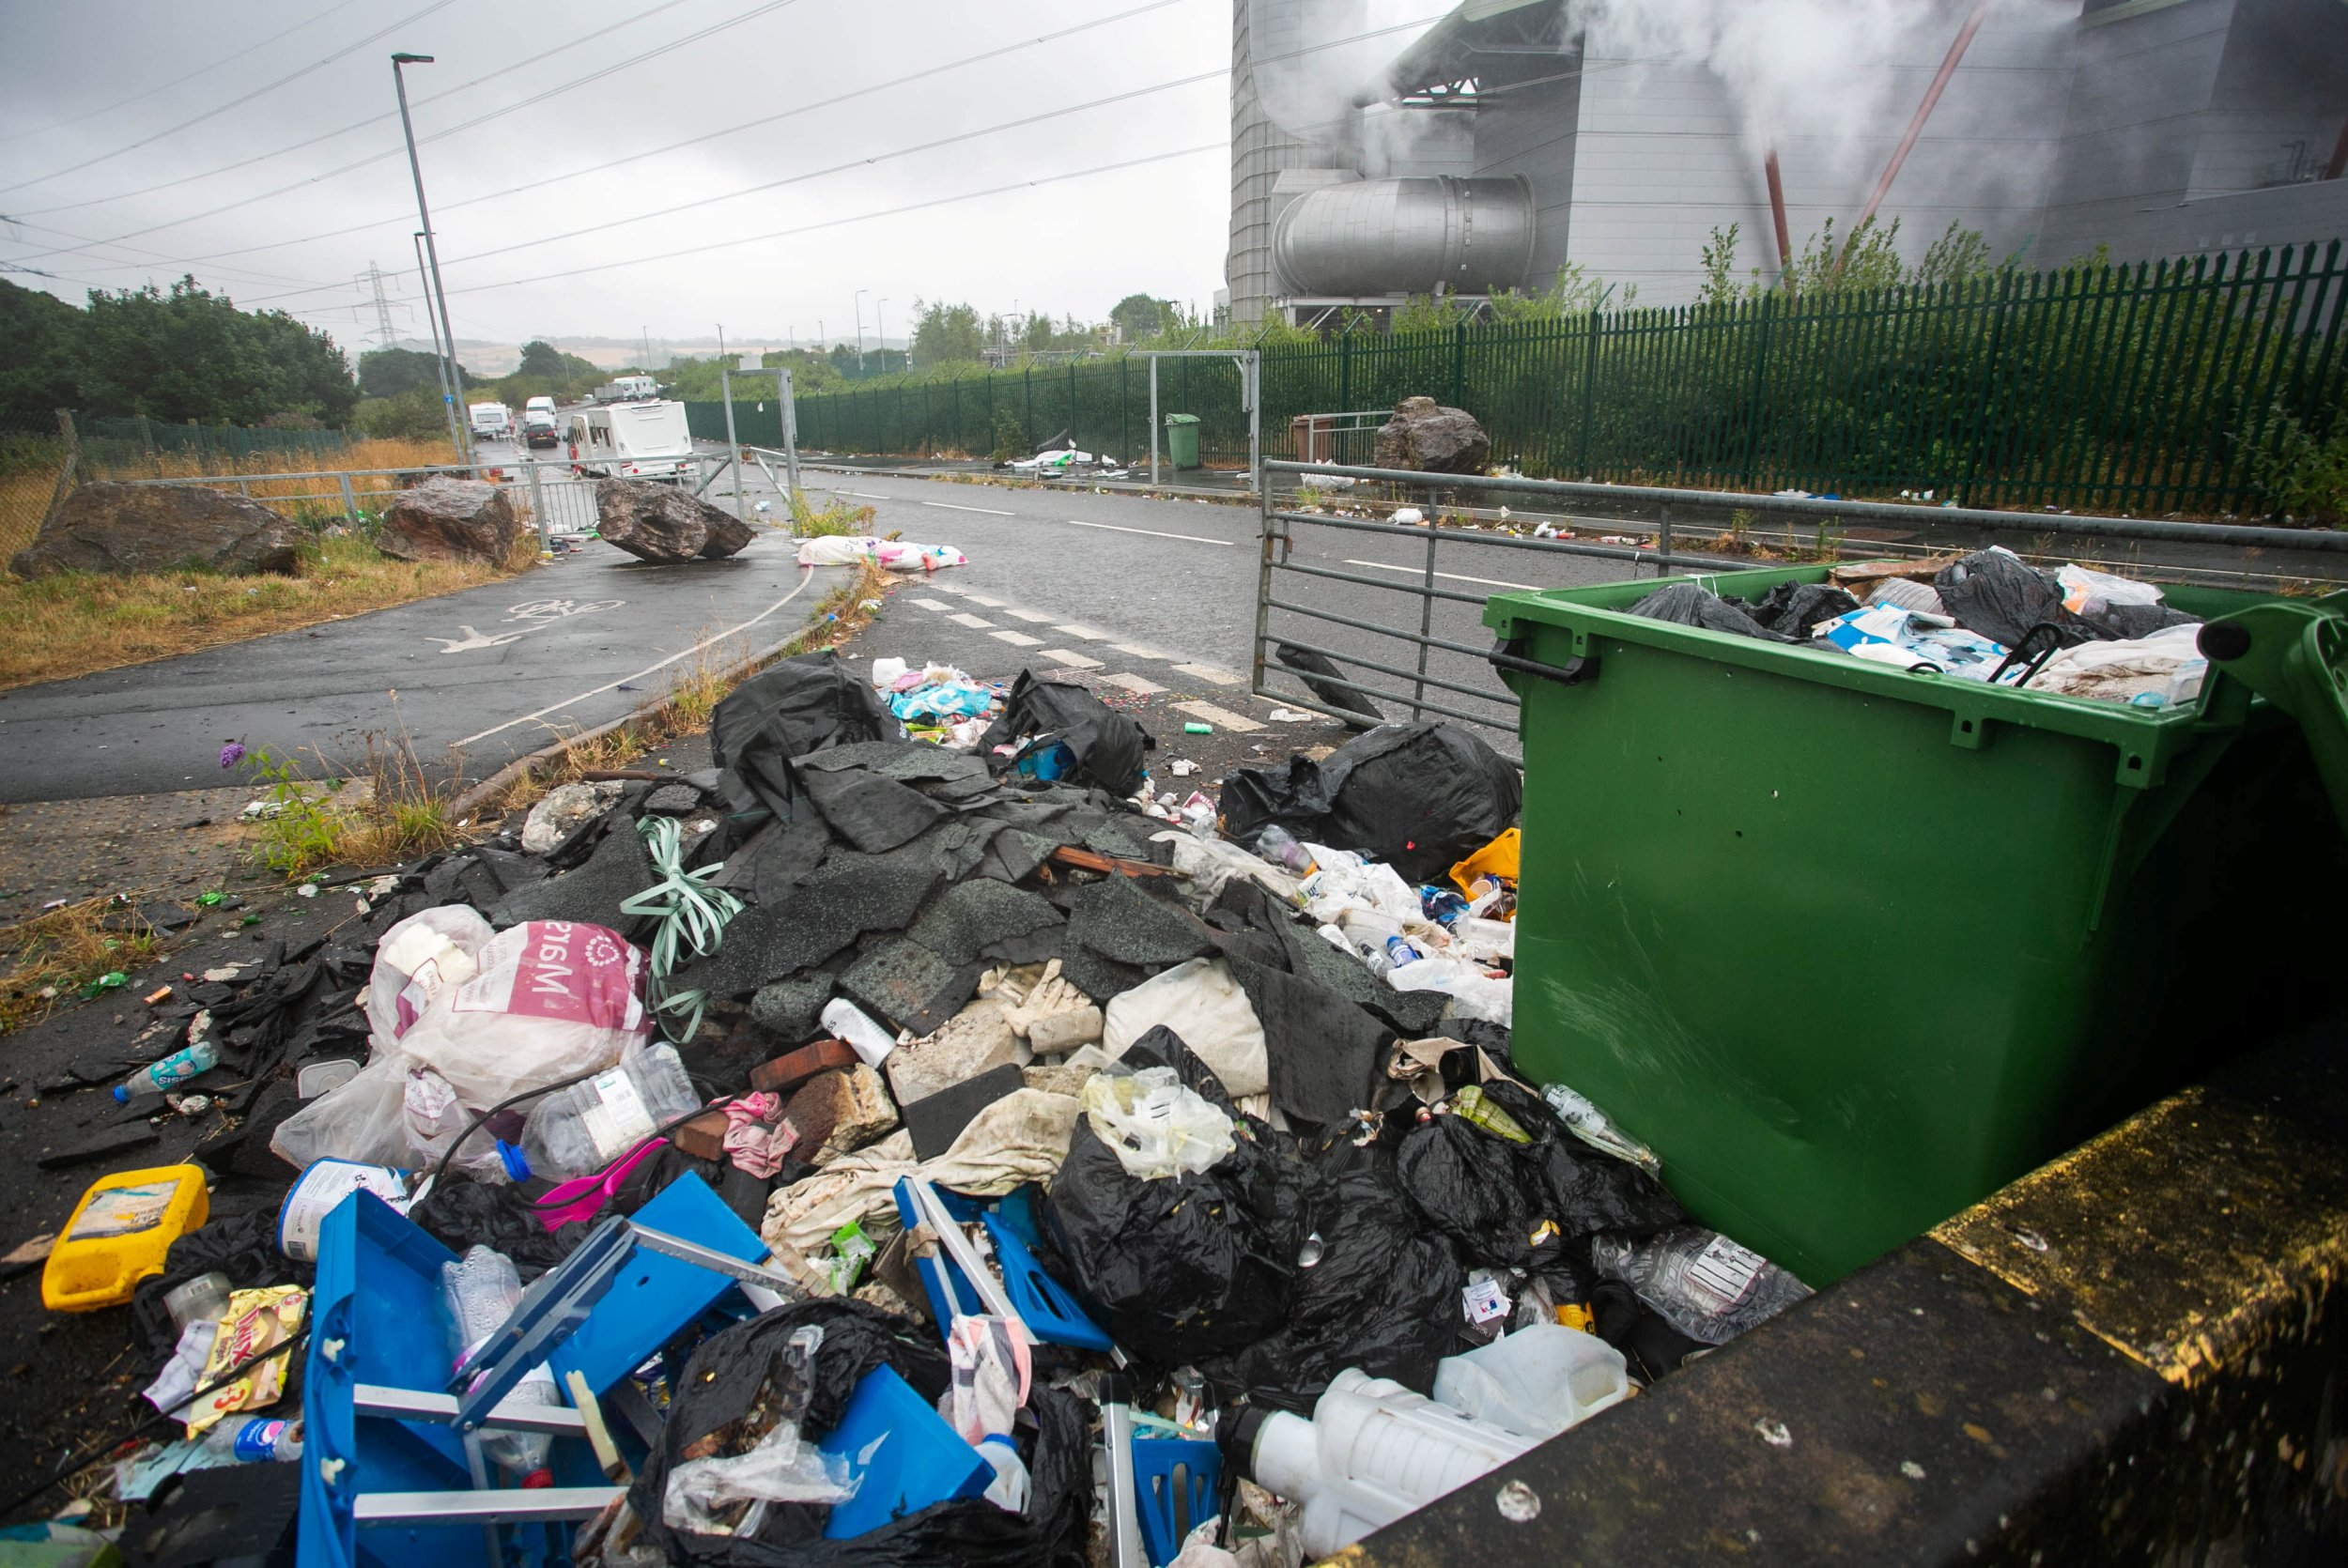 Travellers in Holland Road in Plympton, Devon, are complaining about the litter in the street and think the council should clean up. 27/07/2018 See SWNS story SWLITTER; Travellers who have set up camp next to the Langage power station say they will be gone by the weekend ??? but think the council should clean up first. Several caravan and large vehicles have parked up in Holland Road in Plympton after a number of illegal encampments around Plymouth were given their marching orders. Plymouth Live spoke to a number of the travellers on Thursday morning who said they only intended to stay for a few days.